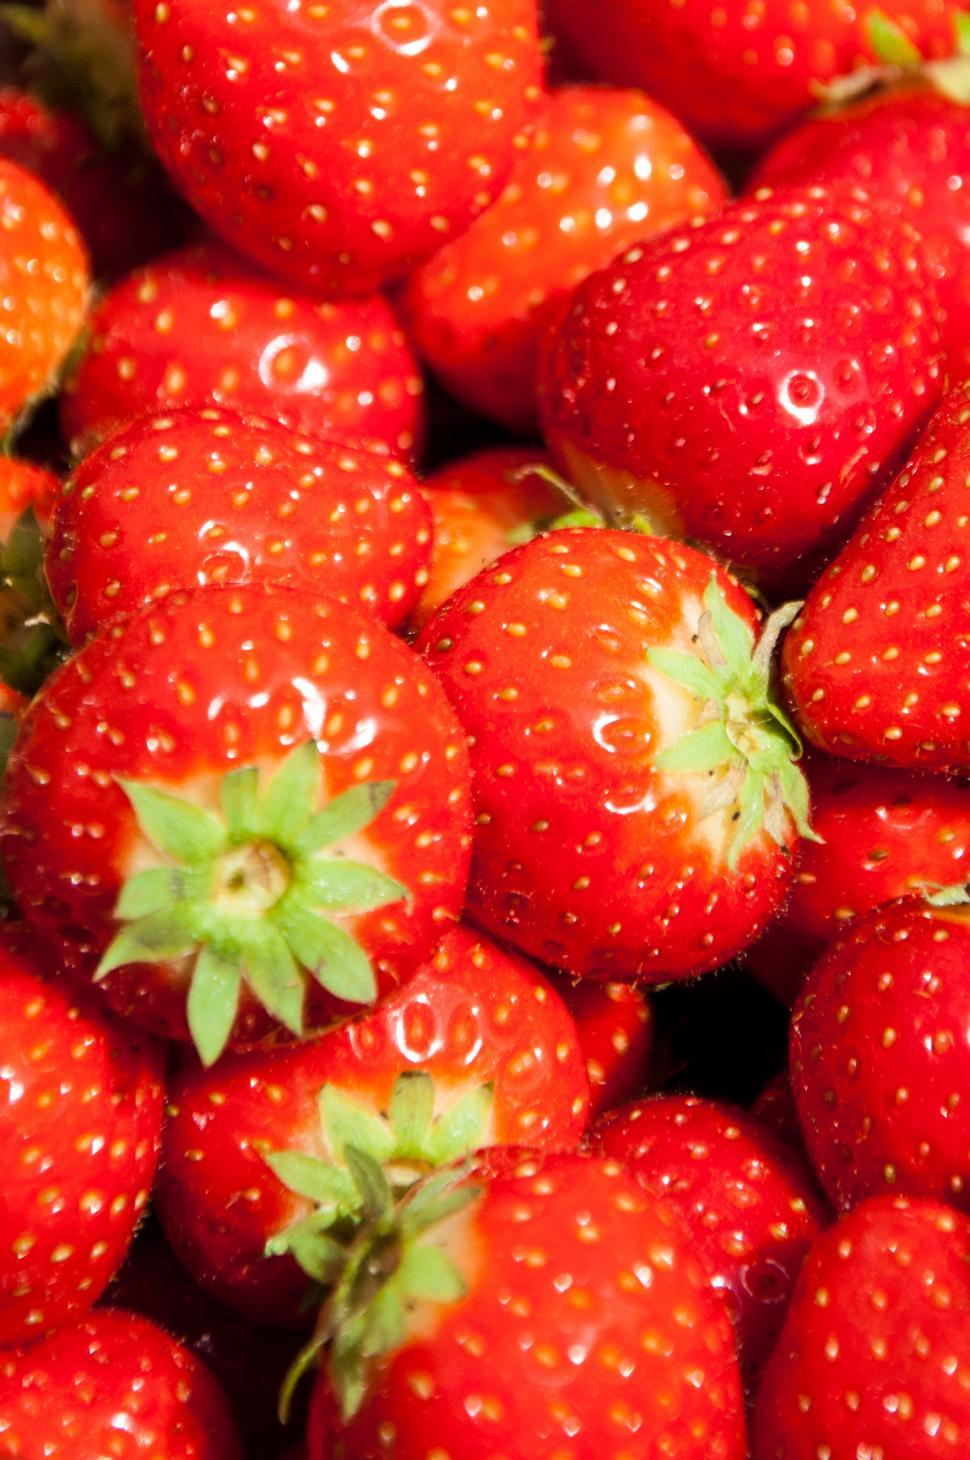 Download Free Stock HD Photo of strawberries background Online